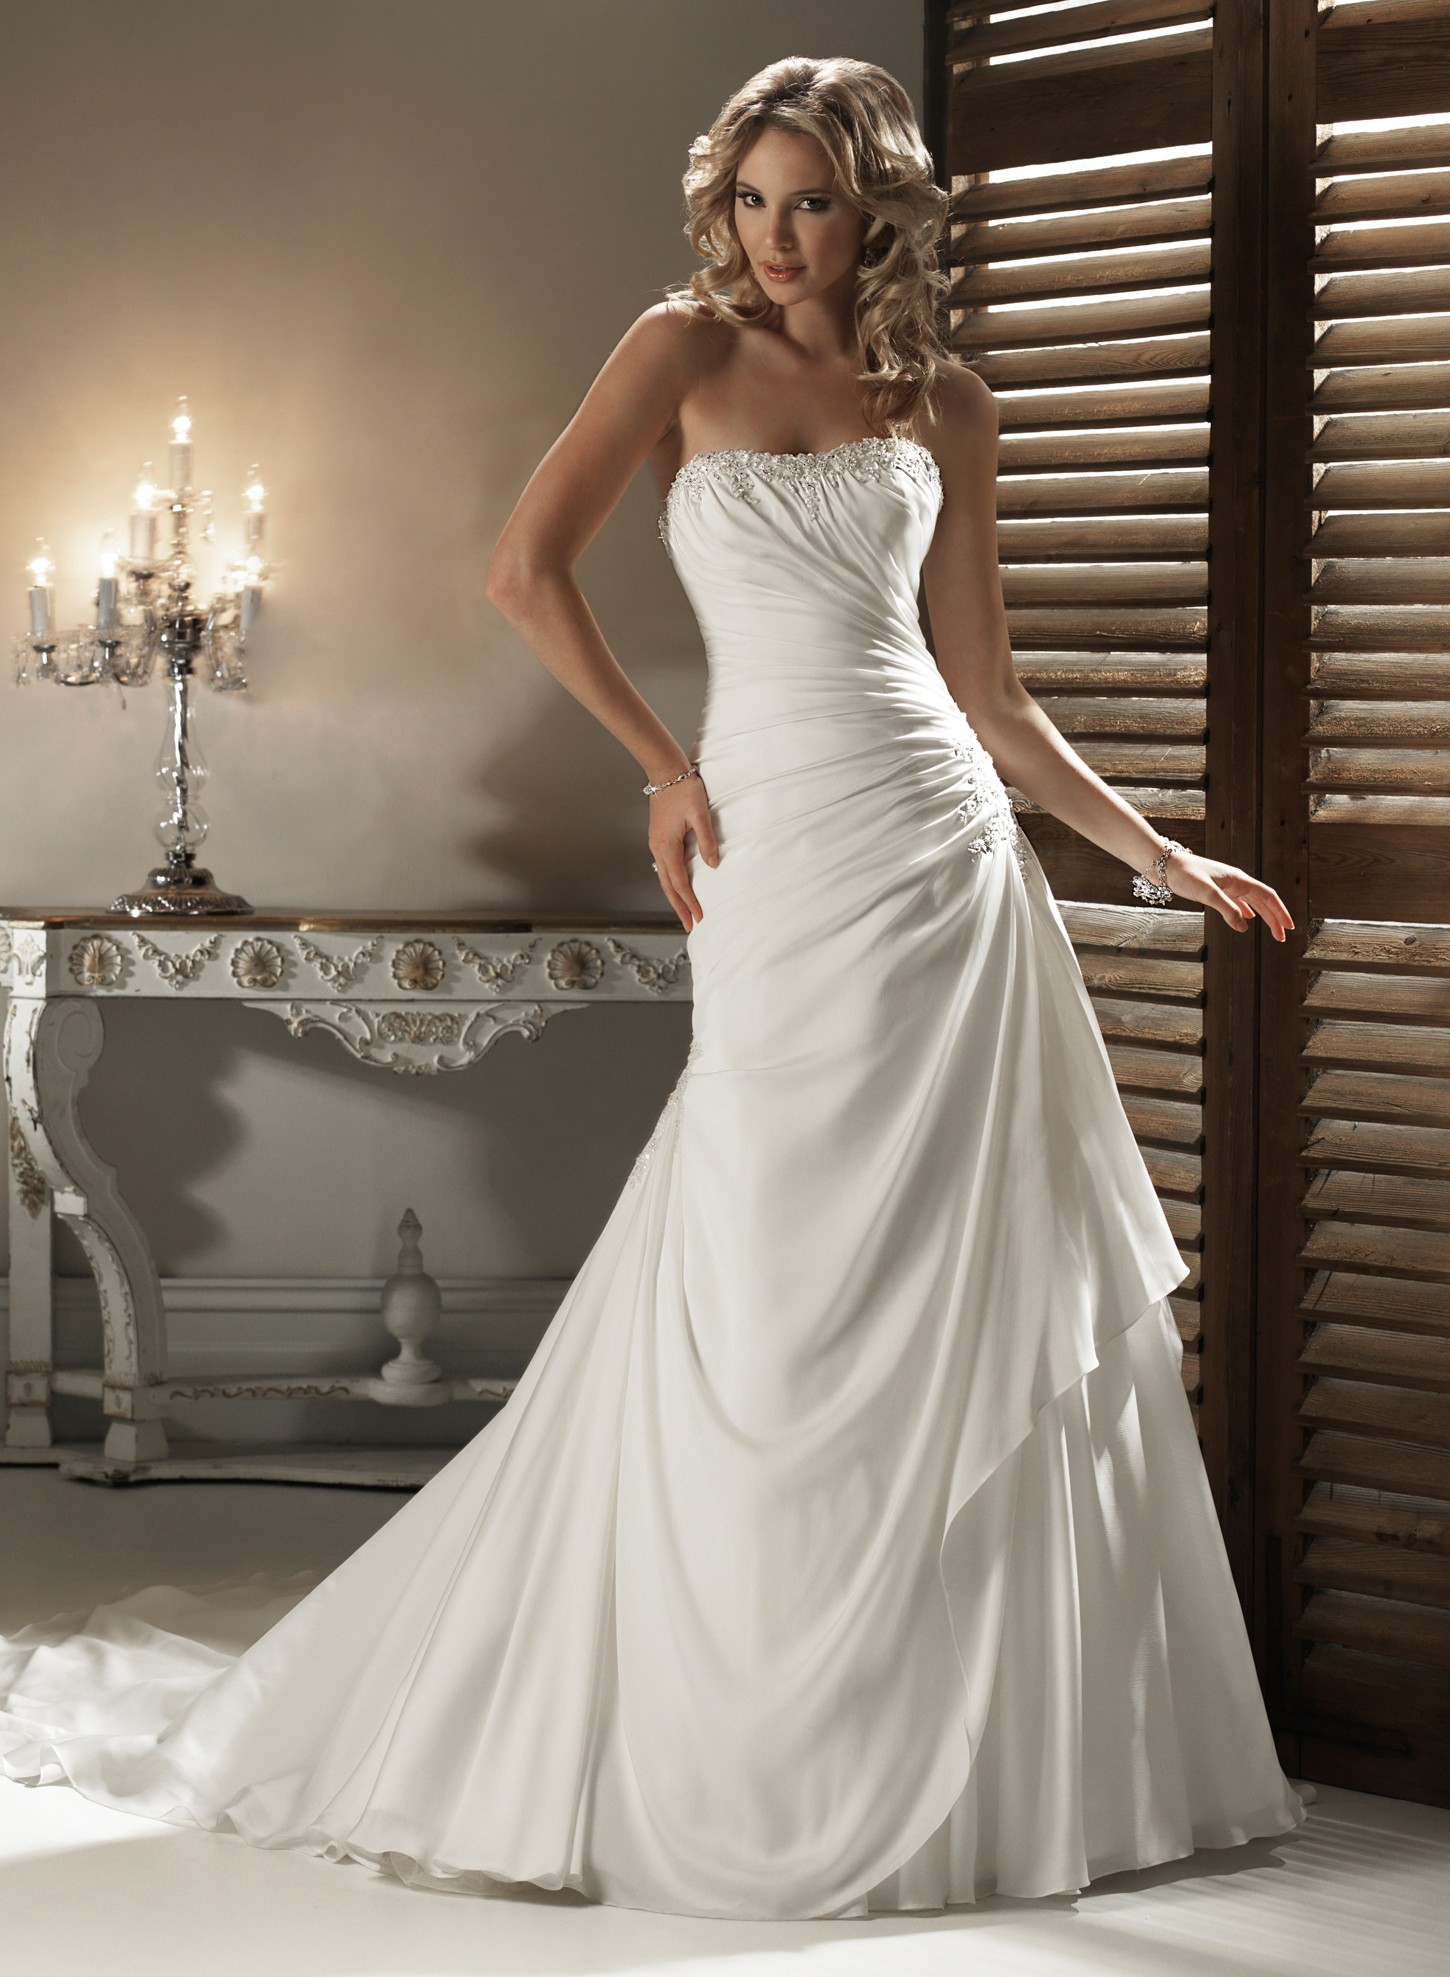 Wedding Gowns A Line Strapless : Gorgeous a line wedding dresses ideas